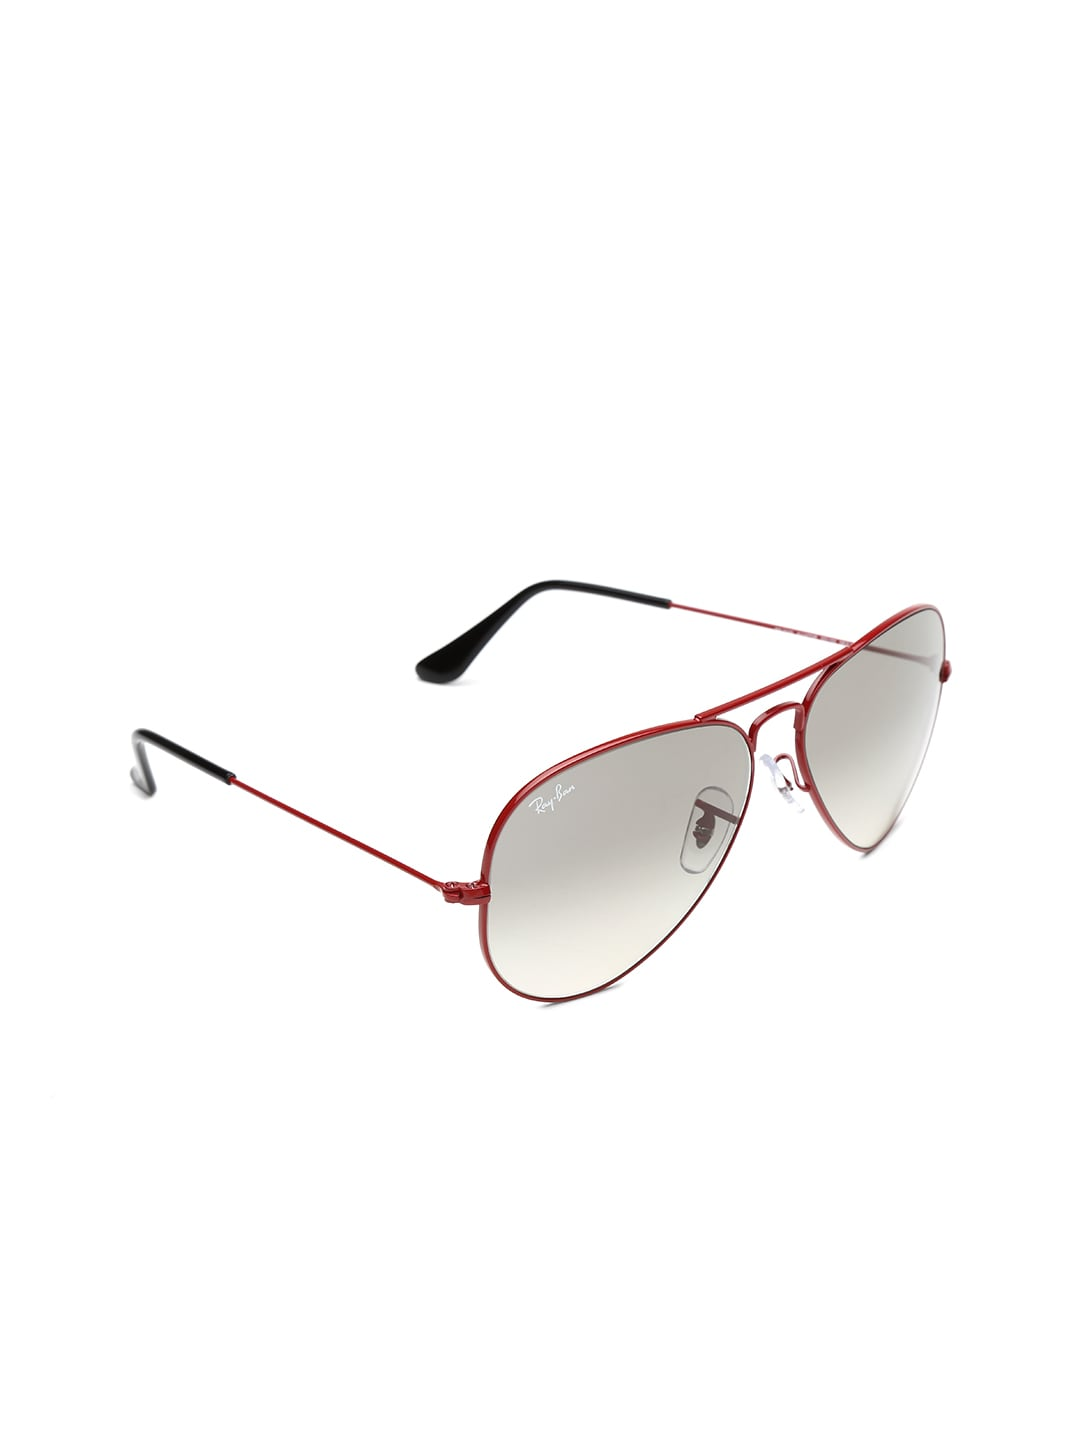 6f68f762fbe Ray Ban 3217 Arnold « One More Soul